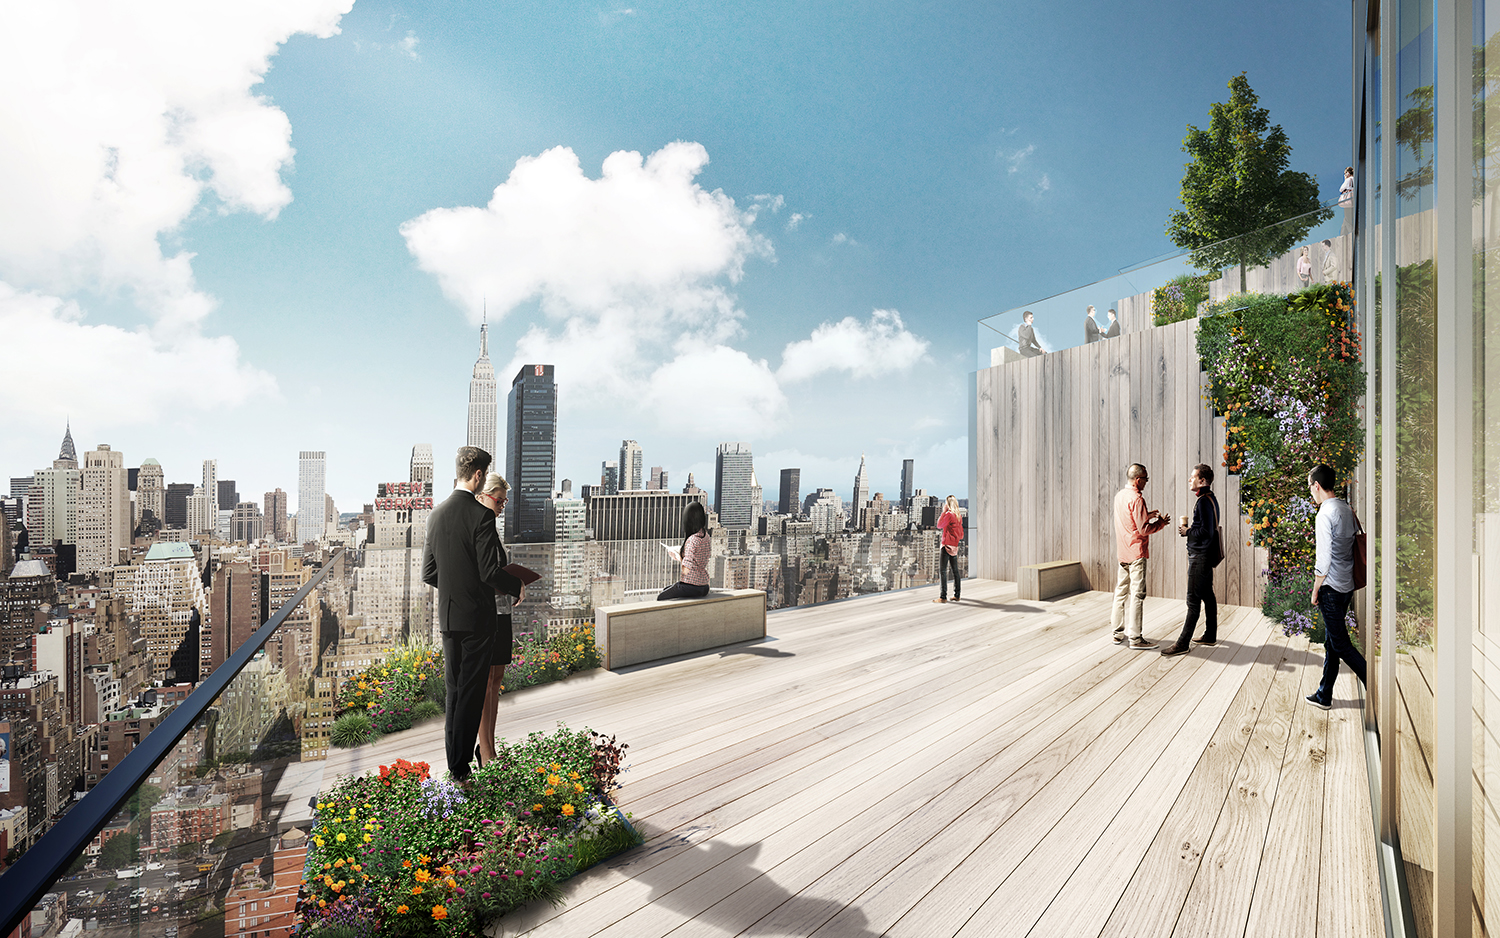 Rendering of 66 Hudson Boulevard showing how the terraces can extend workspaces outdoors. Credit: BIG/Tishman Speyer.